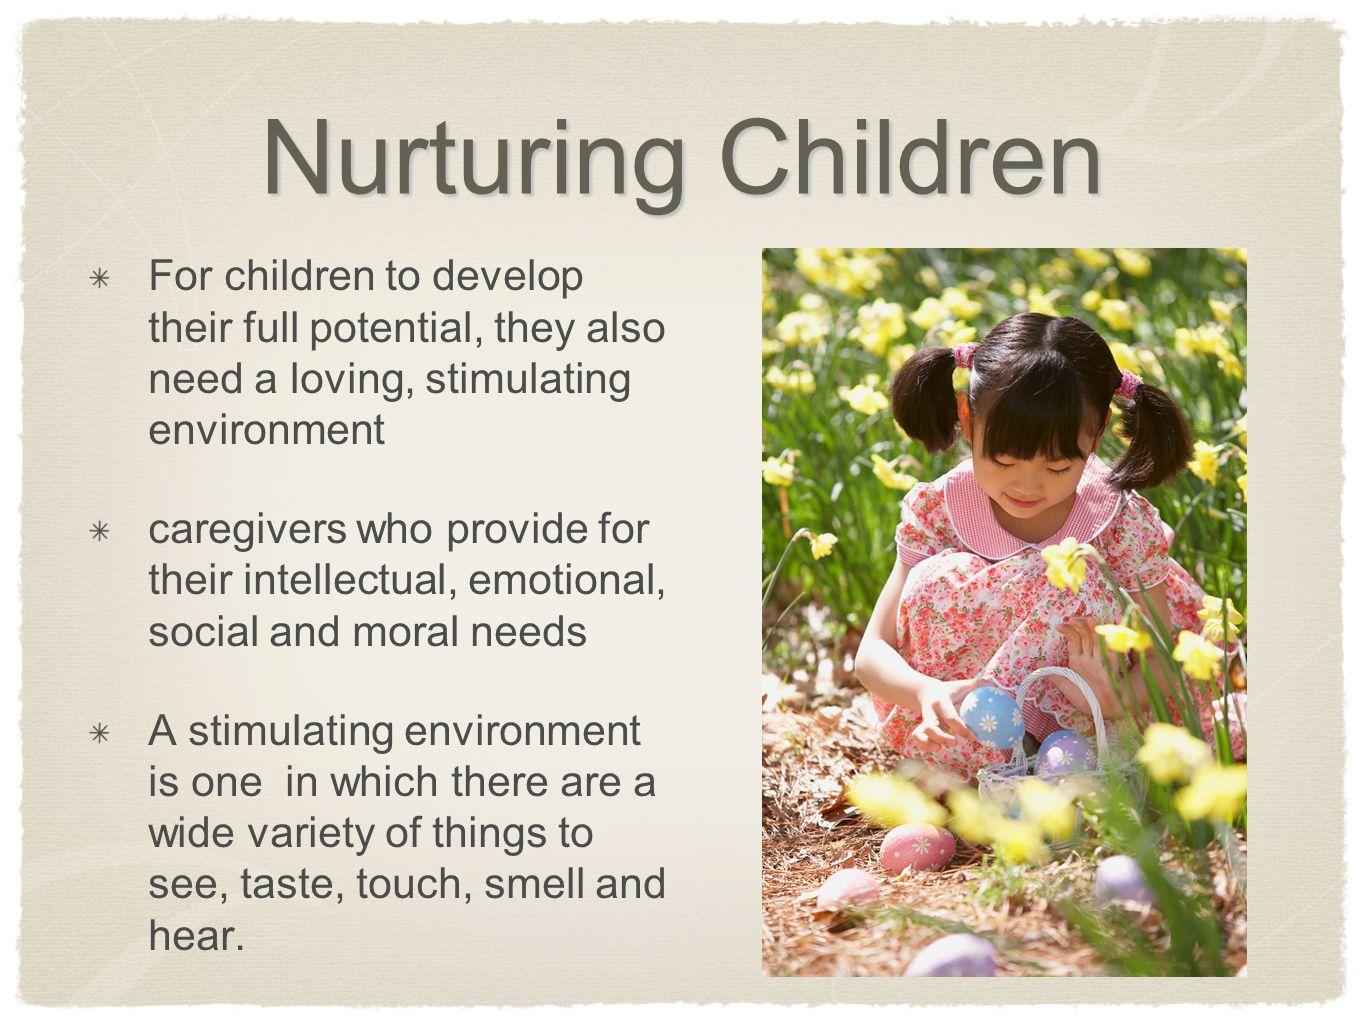 Nurturing Children For children to develop their full potential, they also need a loving, stimulating environment.